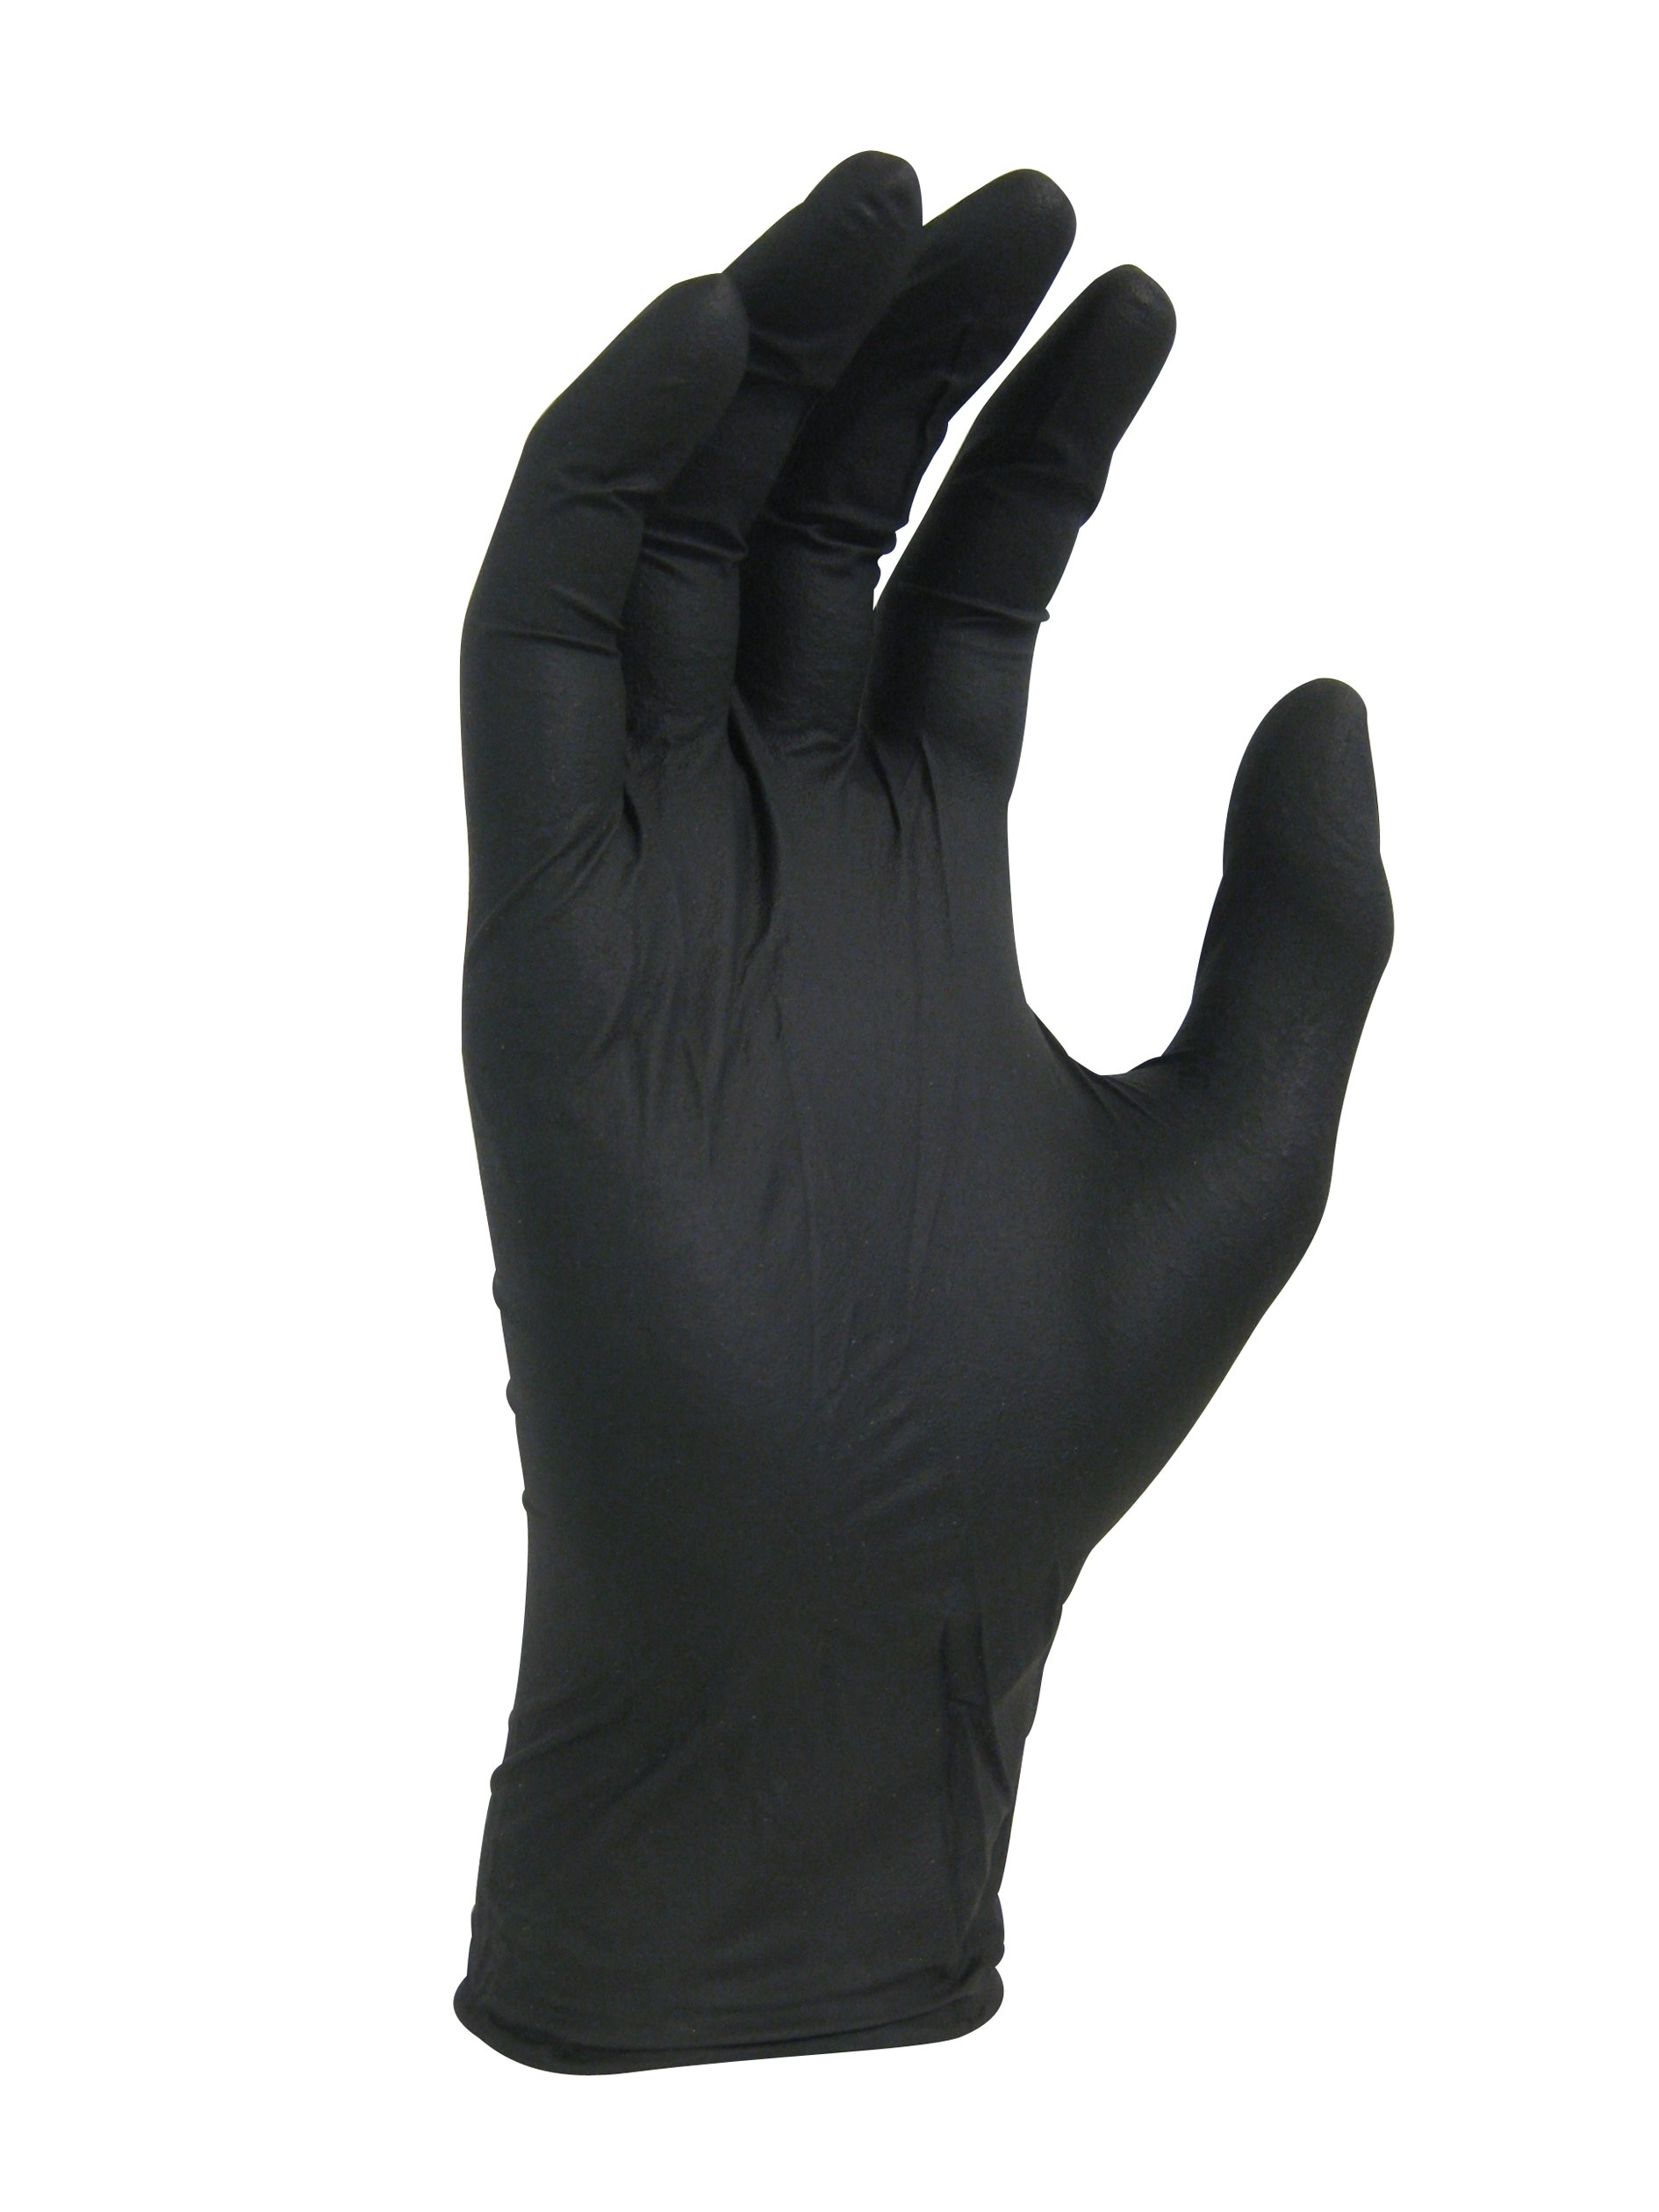 Nitrile Disposable Gloves, 100% Powder and Latex Free, Food Safe, 3.5 mil, Black Color, 1 Case Containing 10 Boxes (1000 Gloves), (Medium (9388-20))